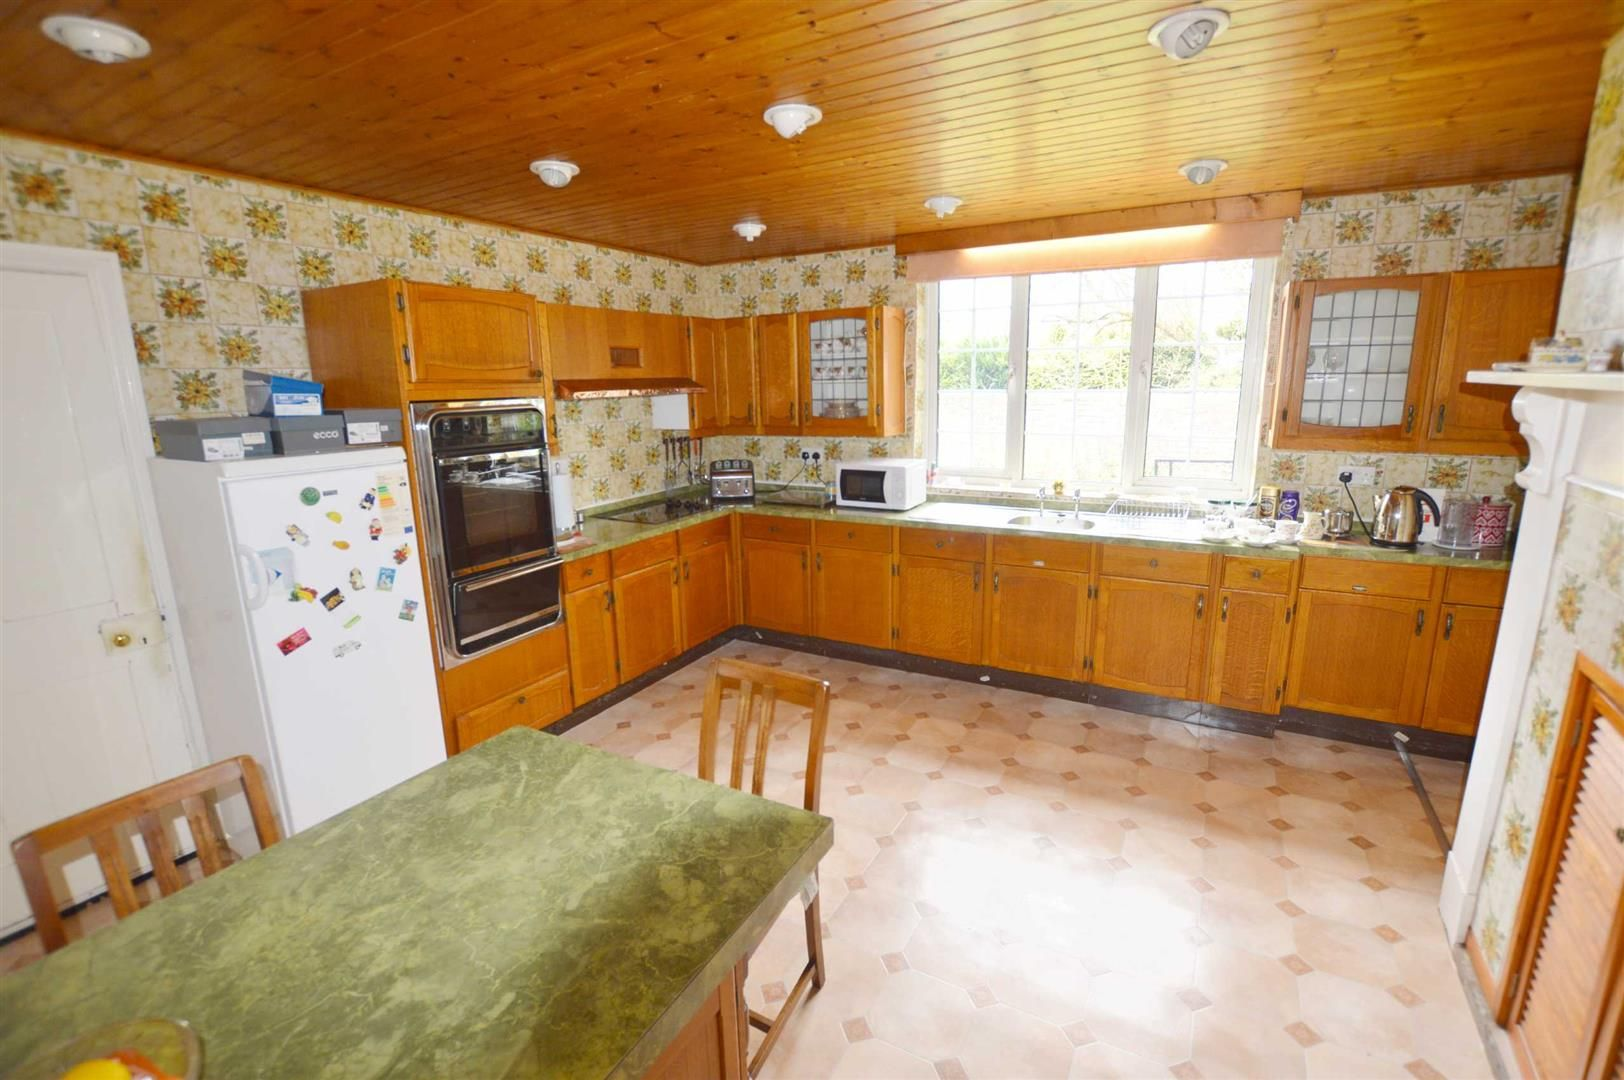 6 bed semi-detached for sale in Leominster 2